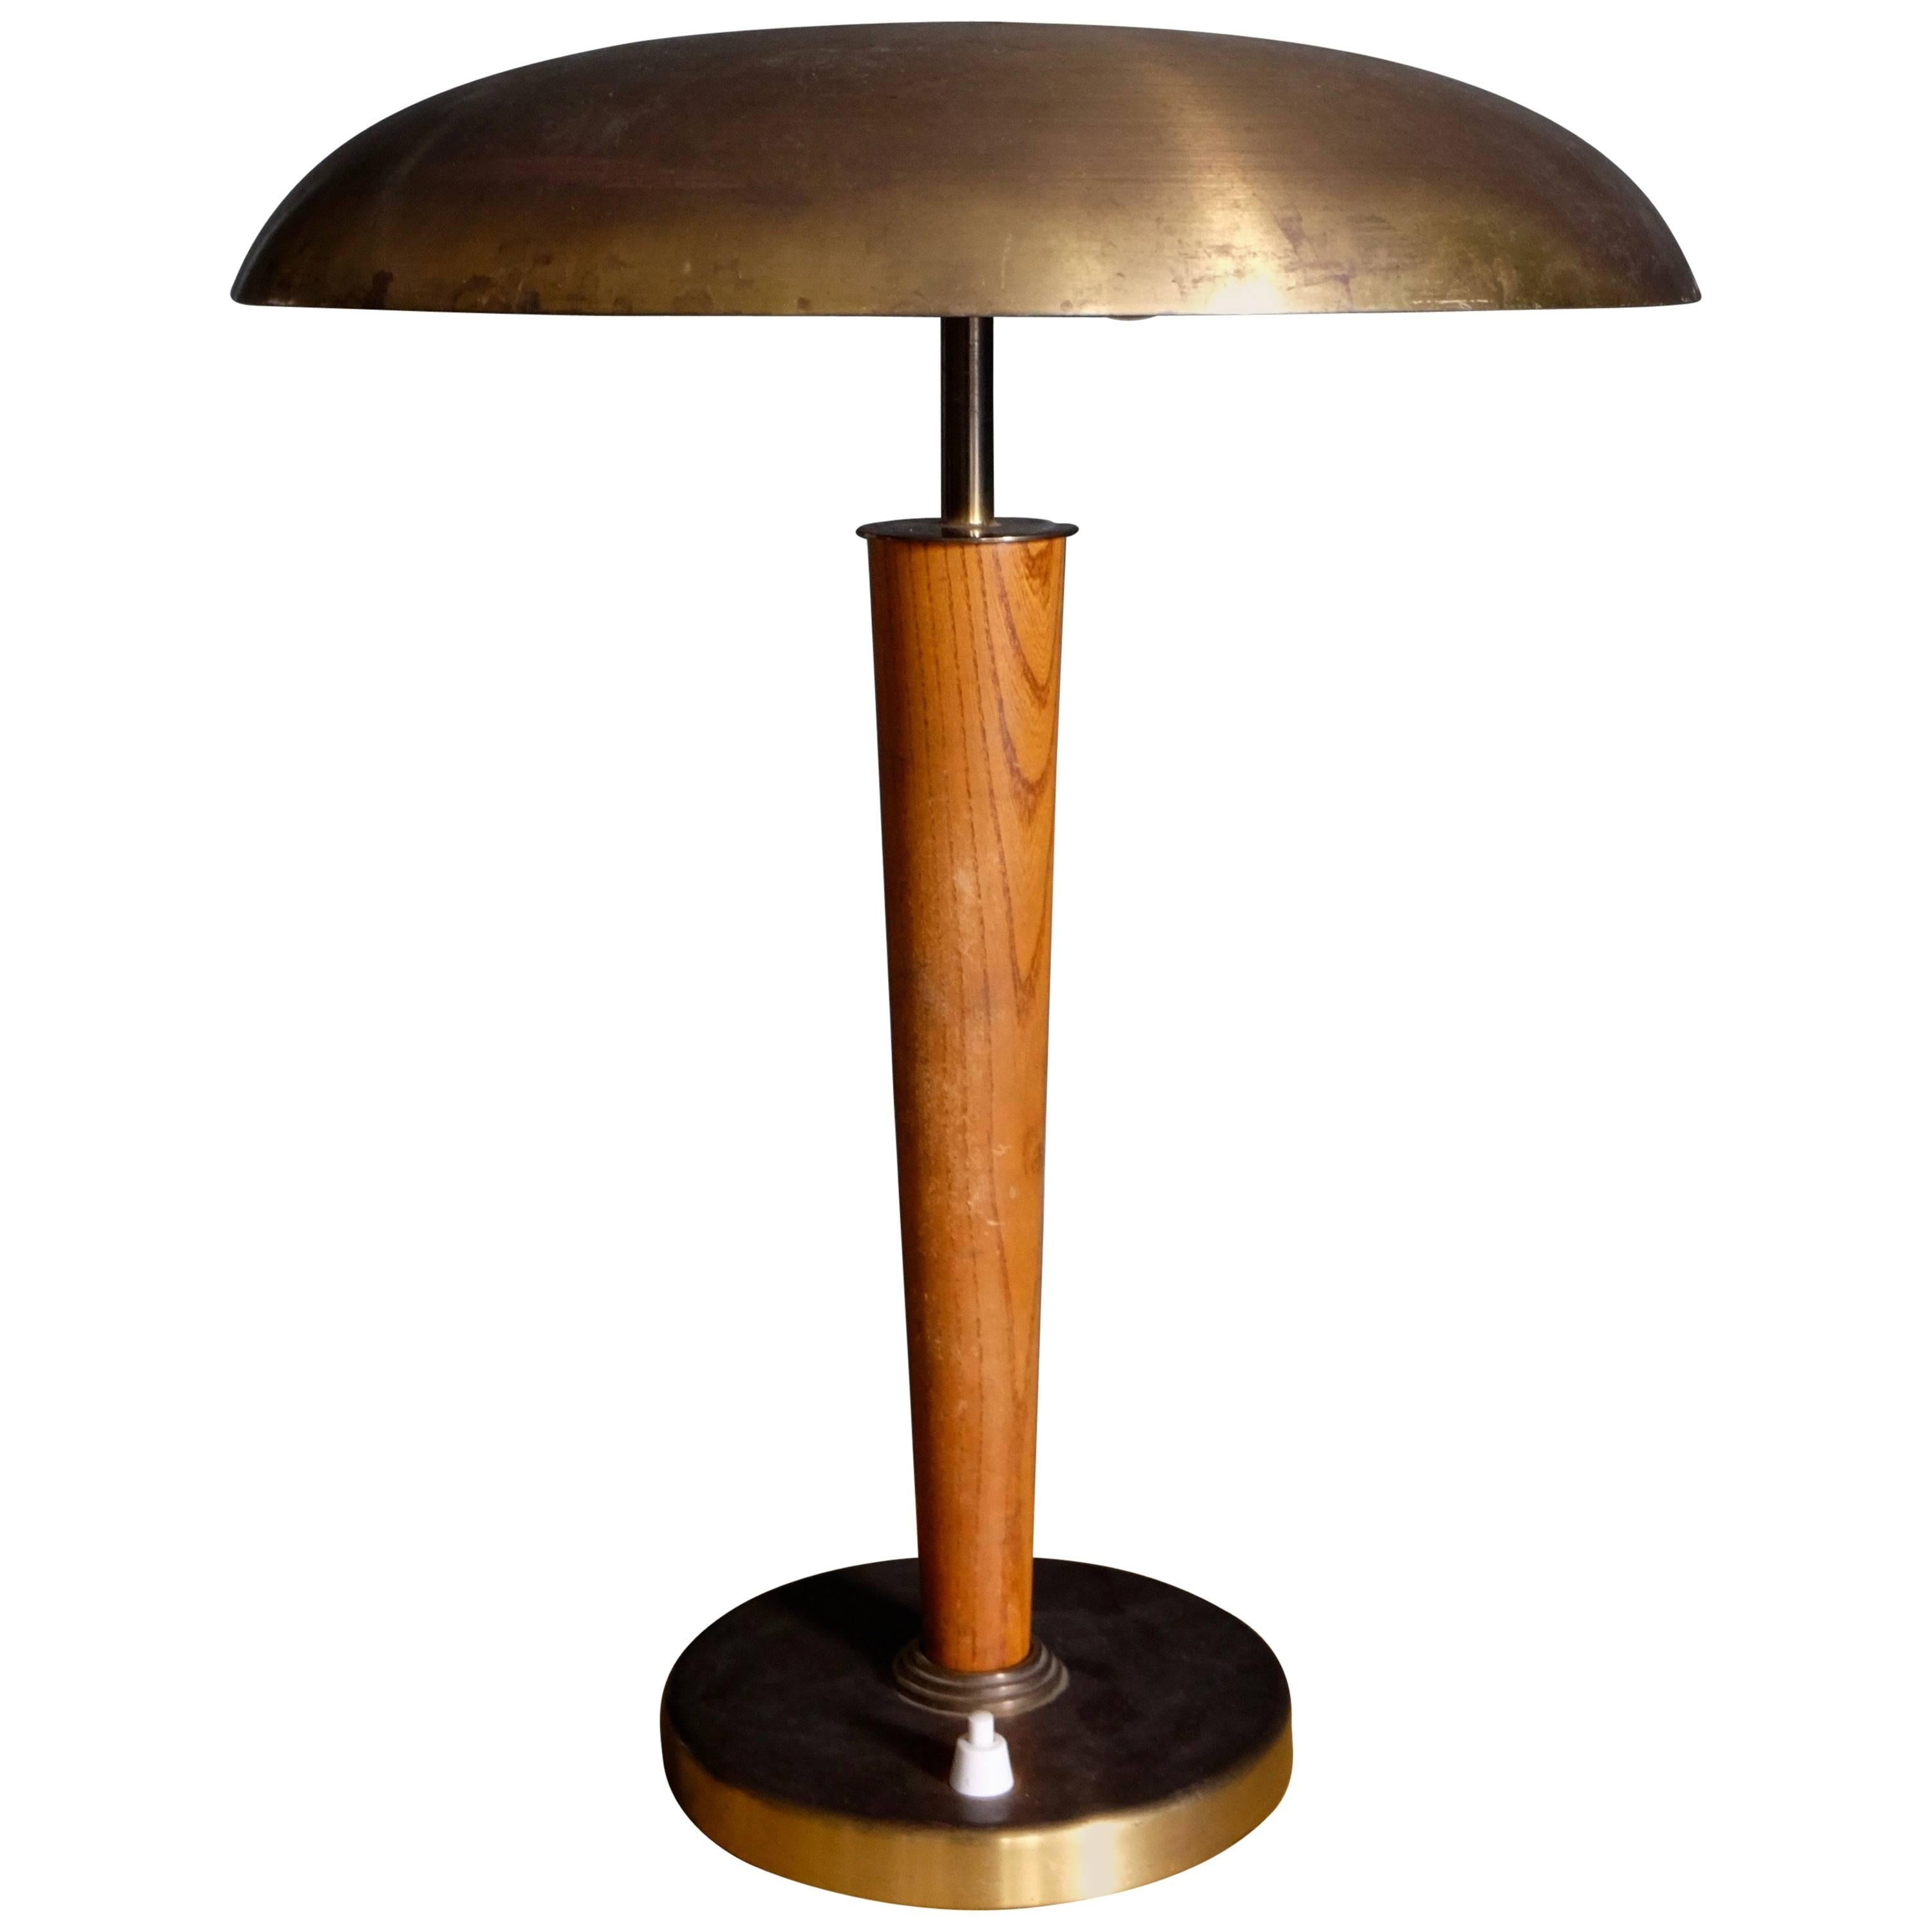 Swedish Brass Table Lamp by Boréns, 1950s